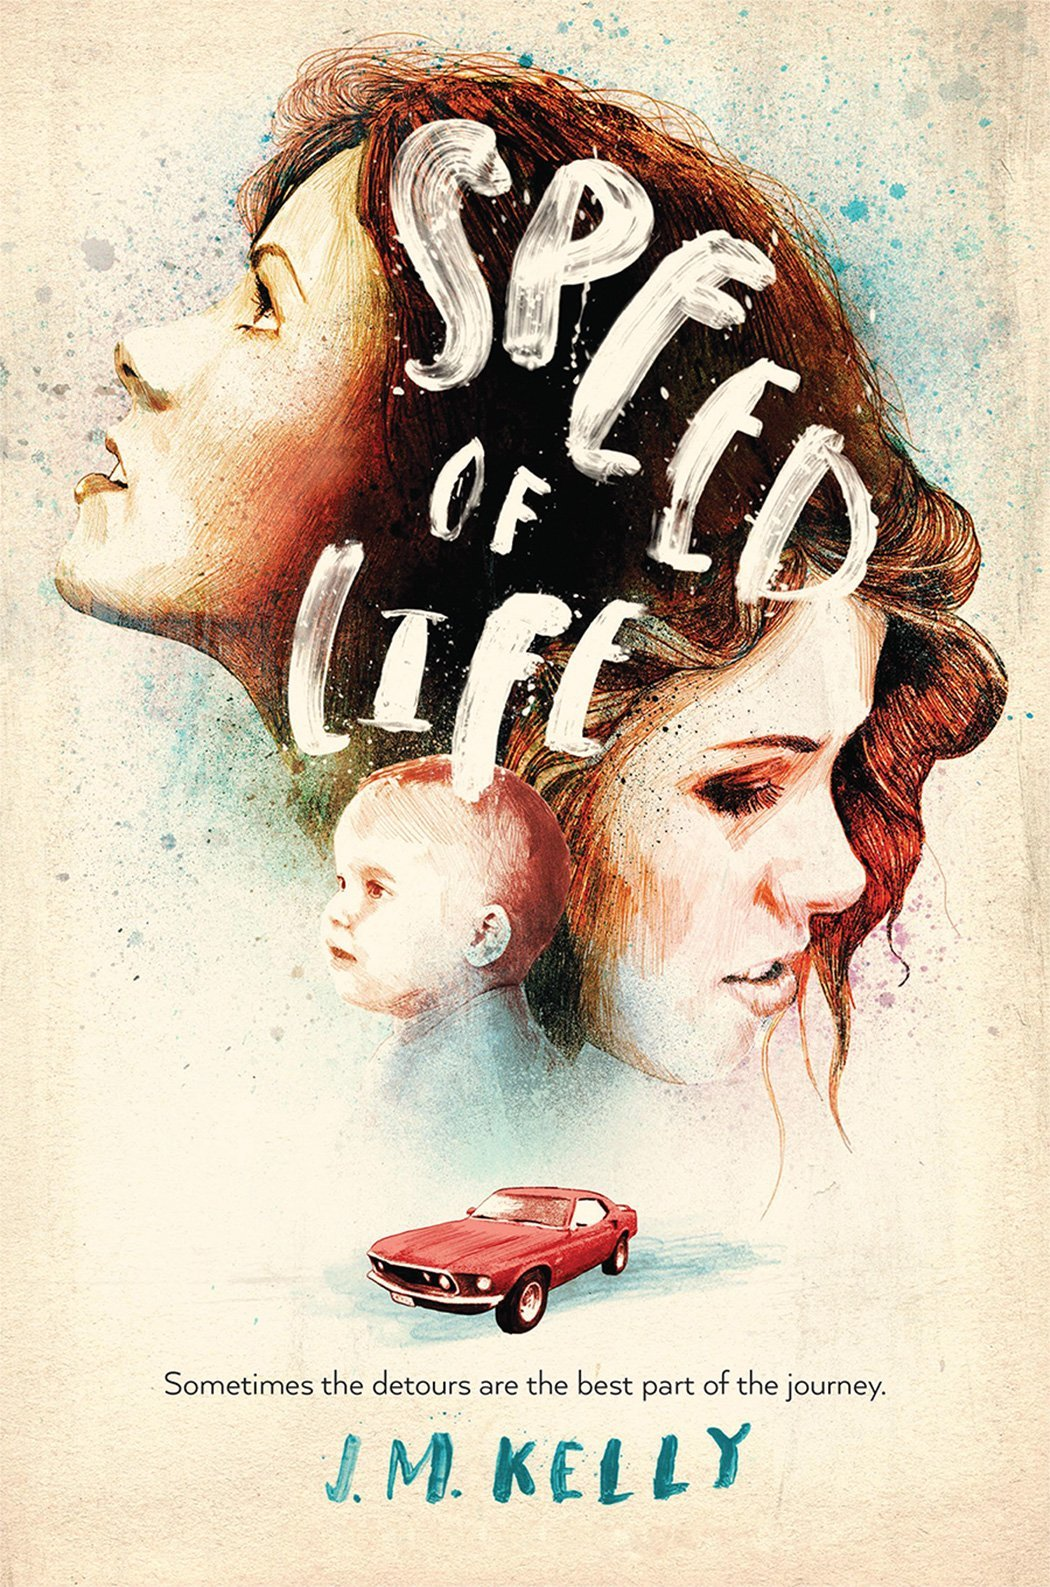 Image result for speed of life by jm kelly